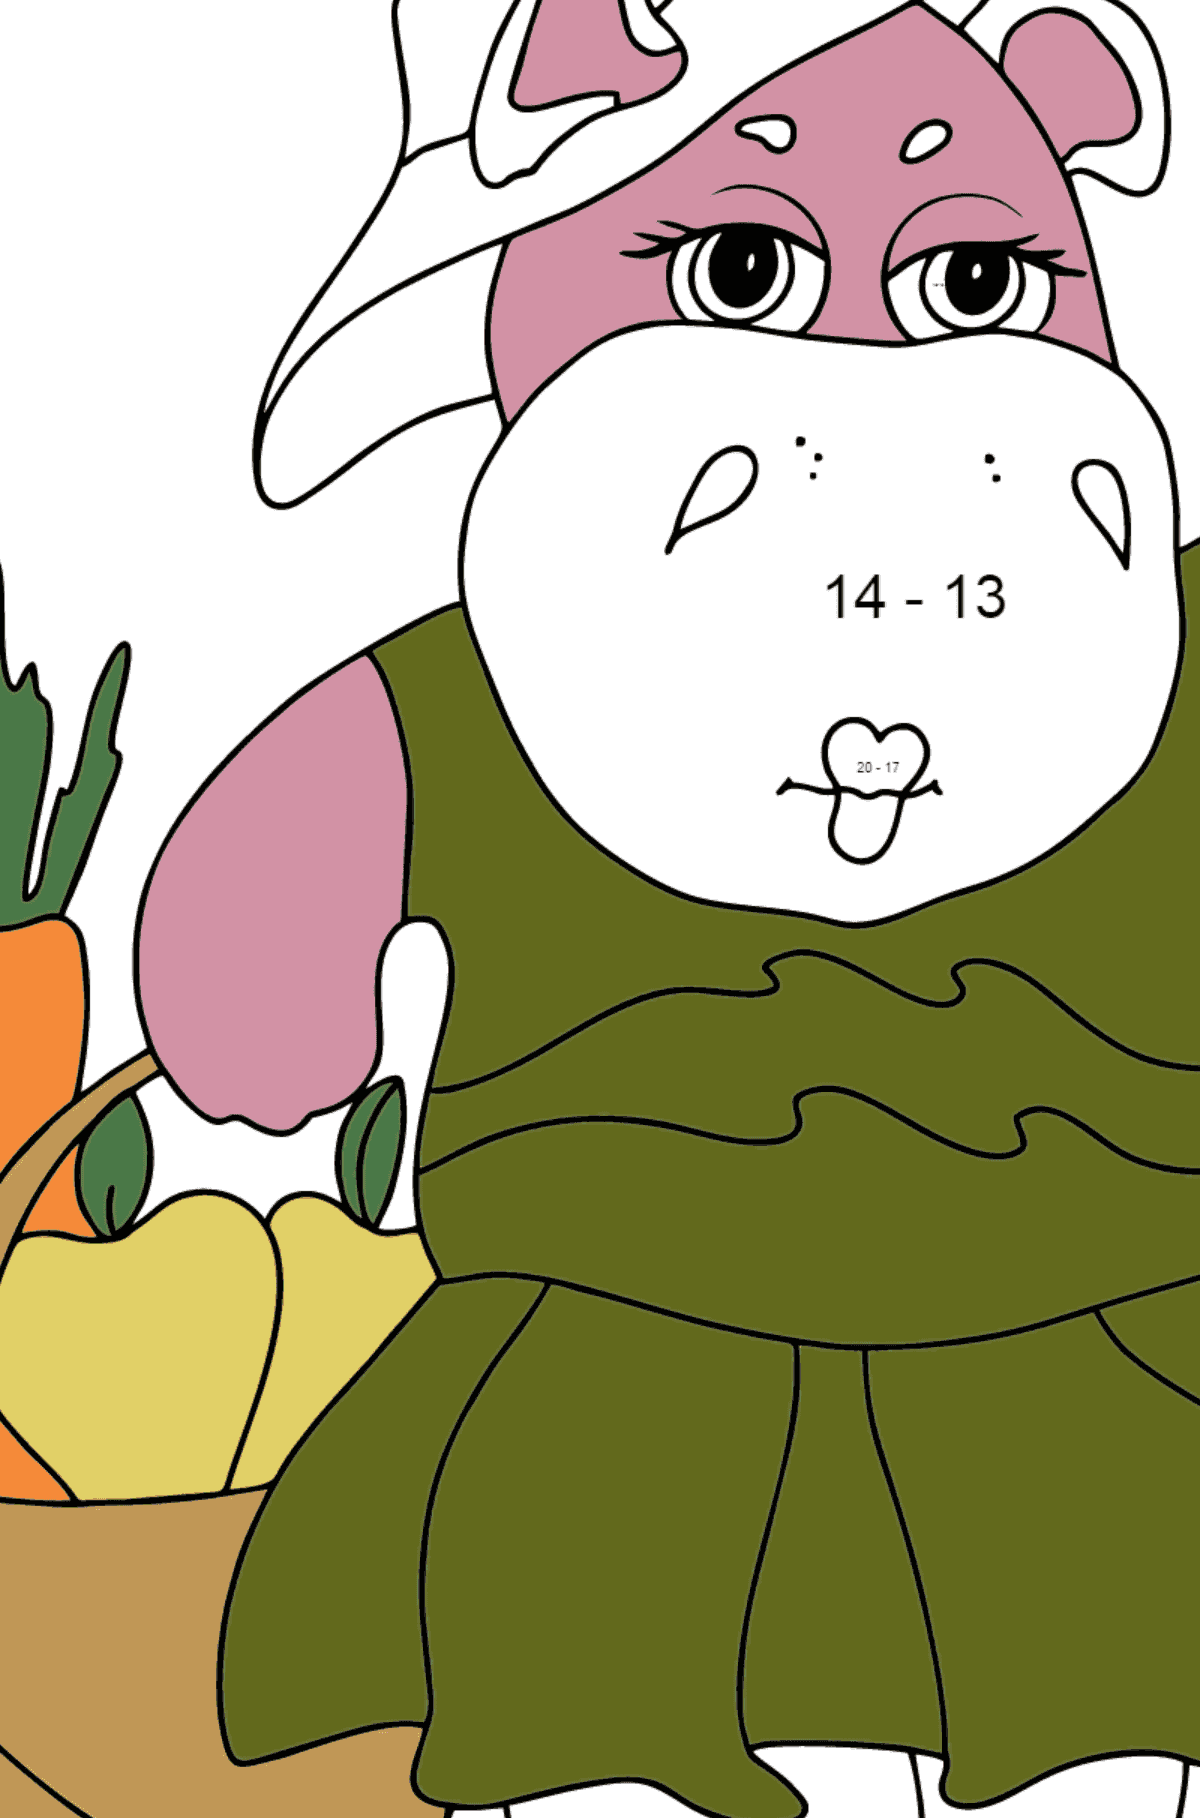 Coloring Page - A Hippo with a Basket of Carrots and Apples - Check it Out for Kids  - Color by Number Substraction